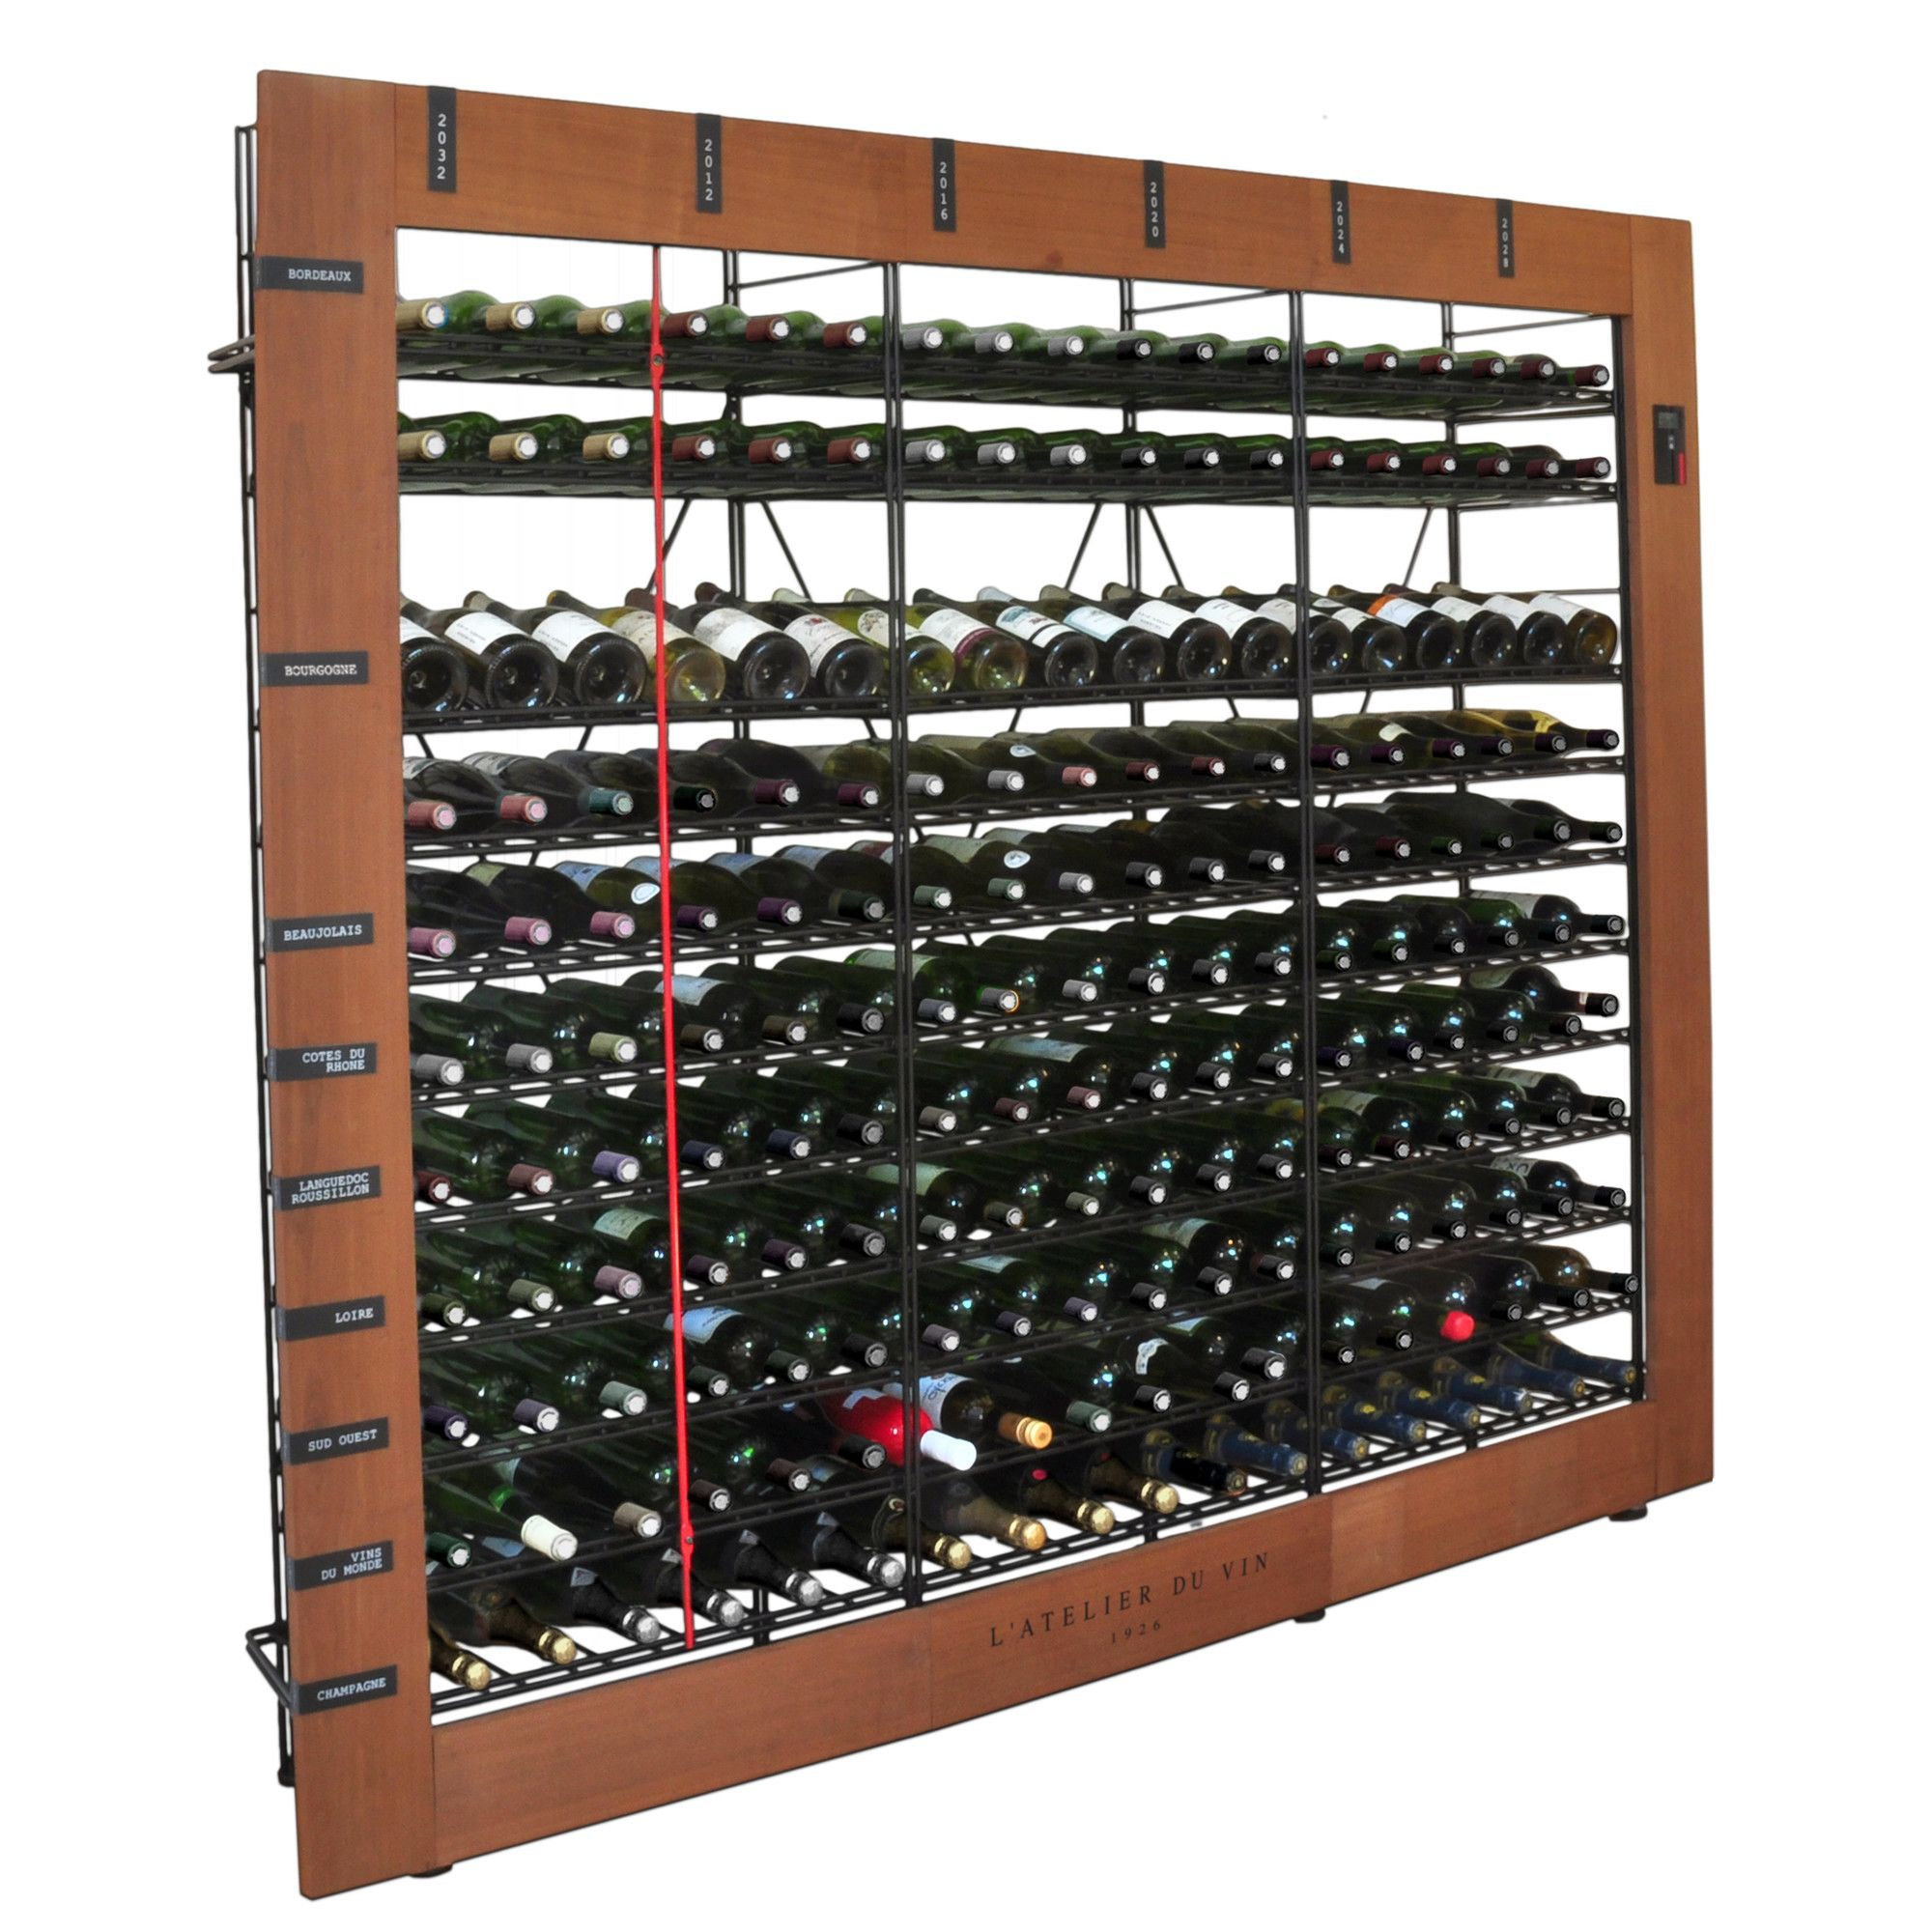 L'Atelier du Vin Storing Les Caves Smart Cellars Additional Unit (66 Bottles) at Tesco Direct